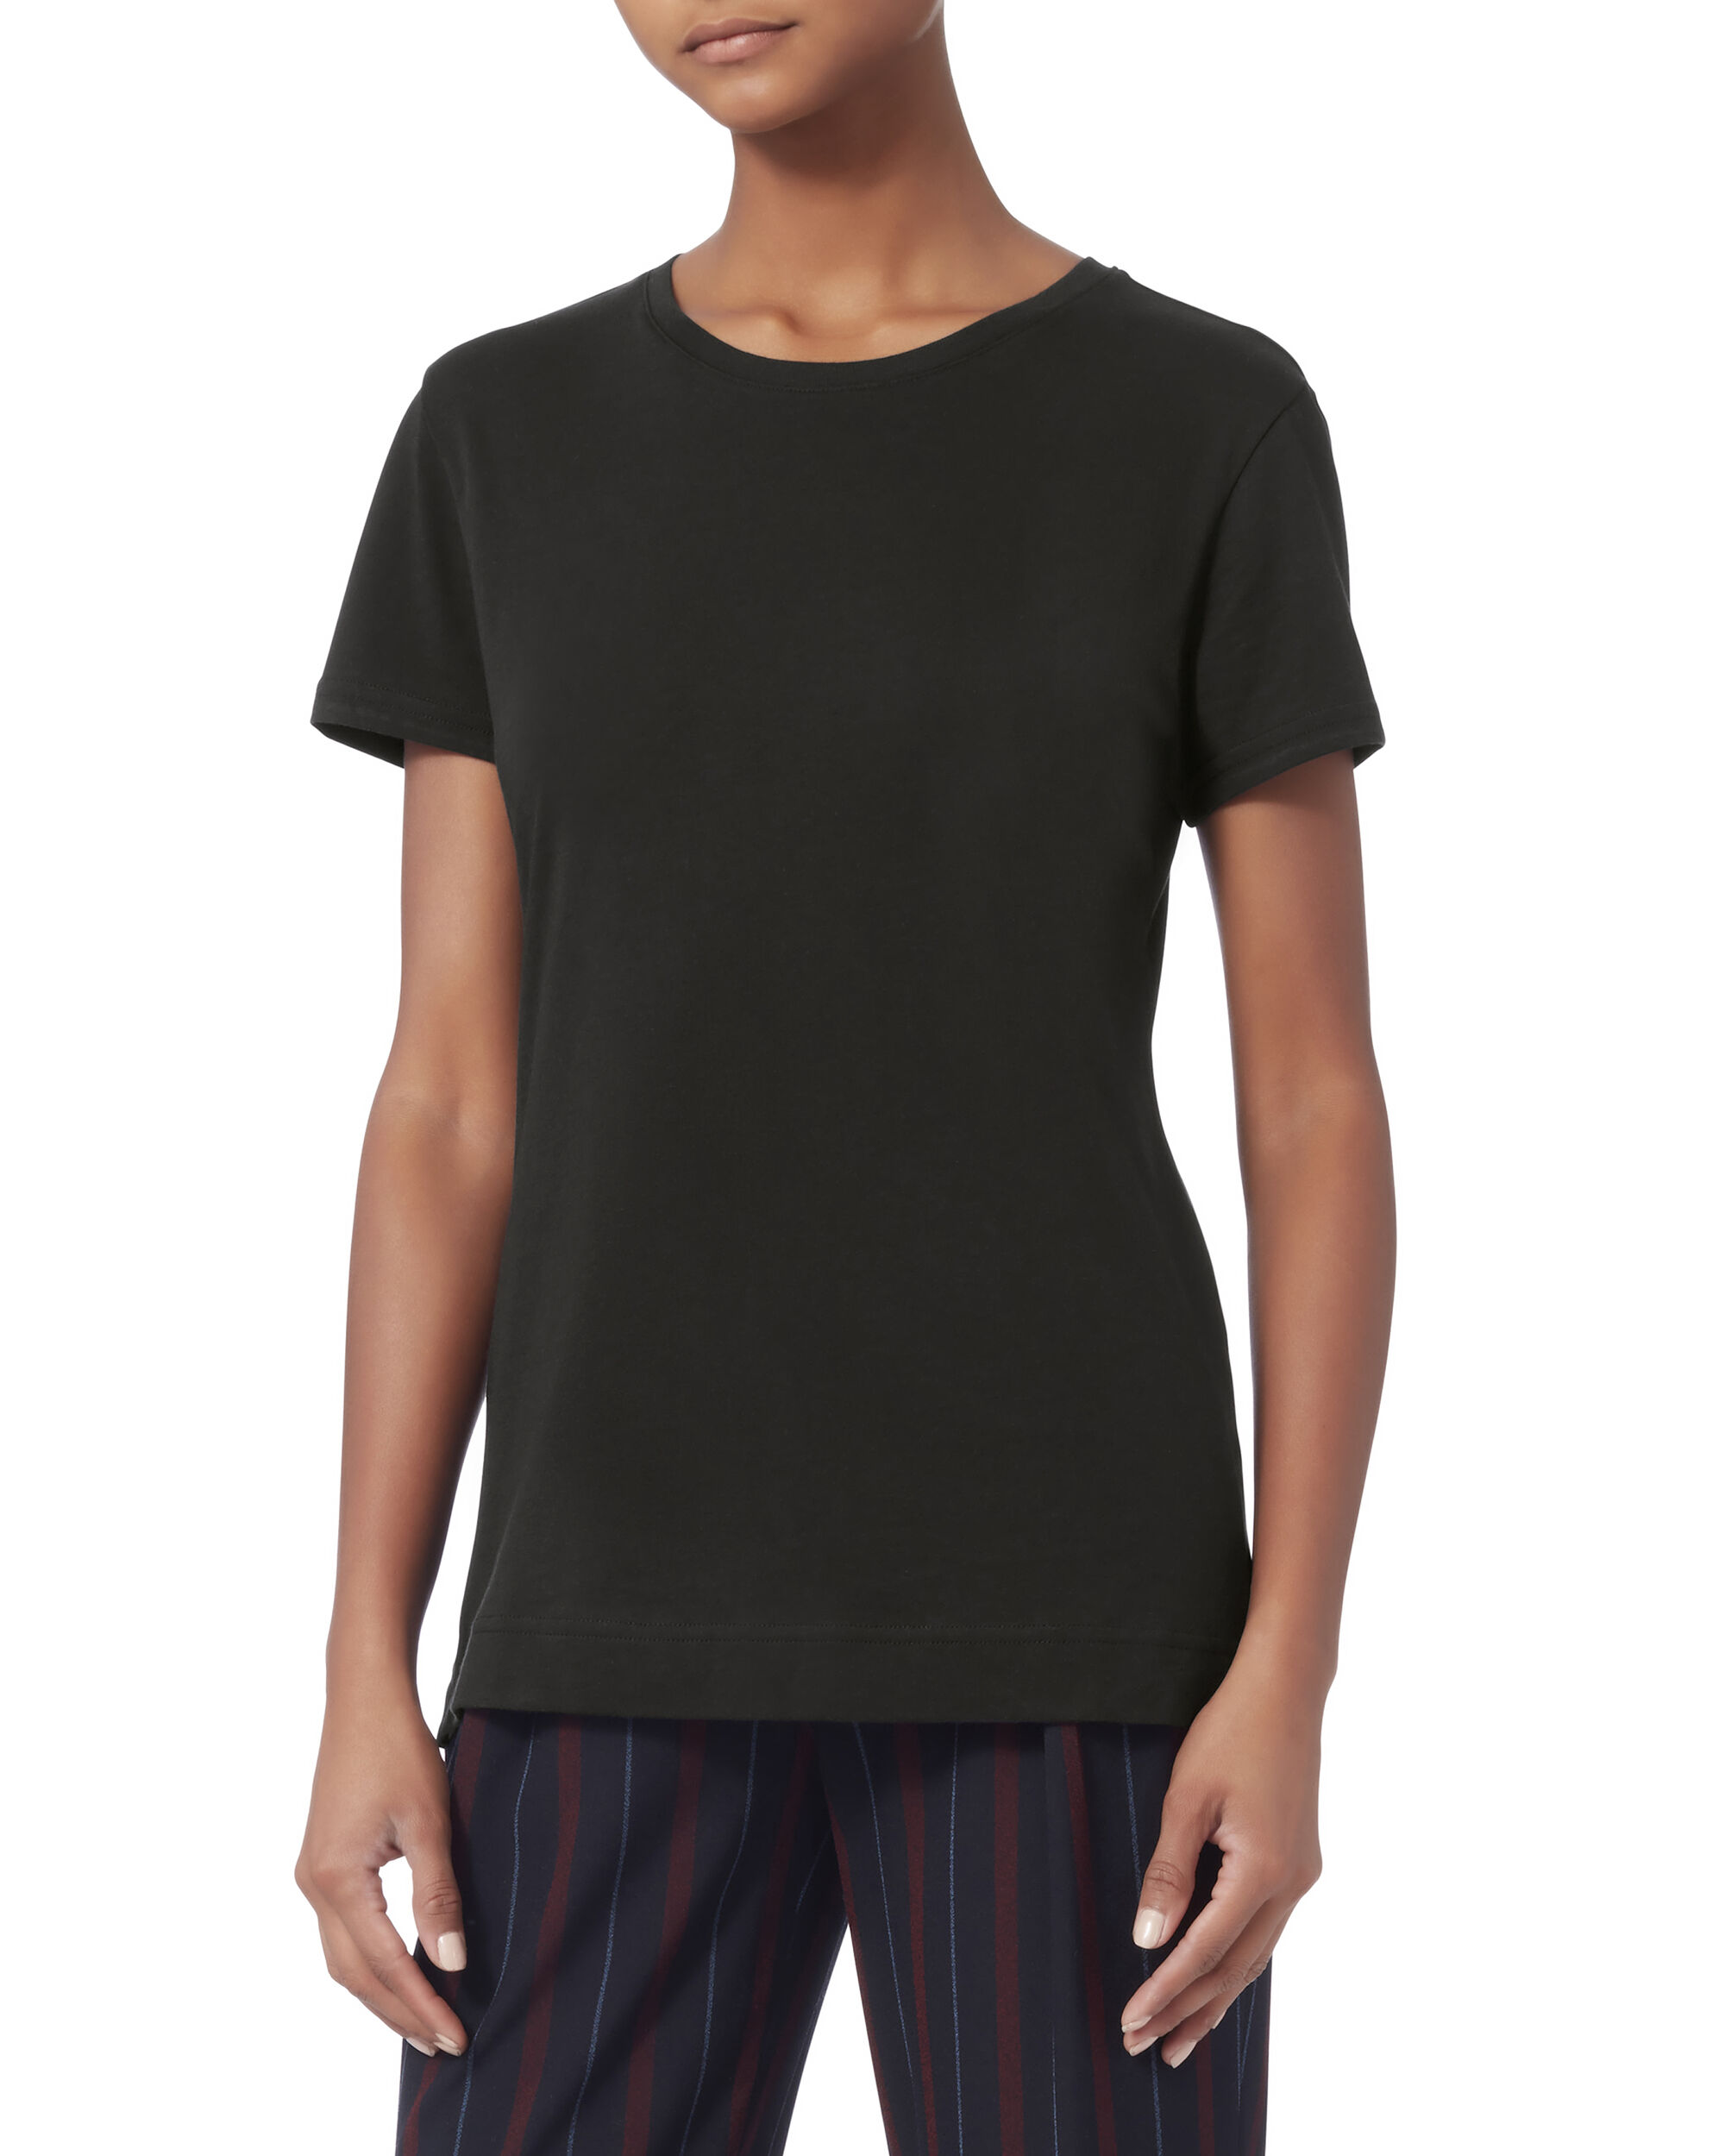 Pima Cotton Black T-Shirt, BLACK, hi-res